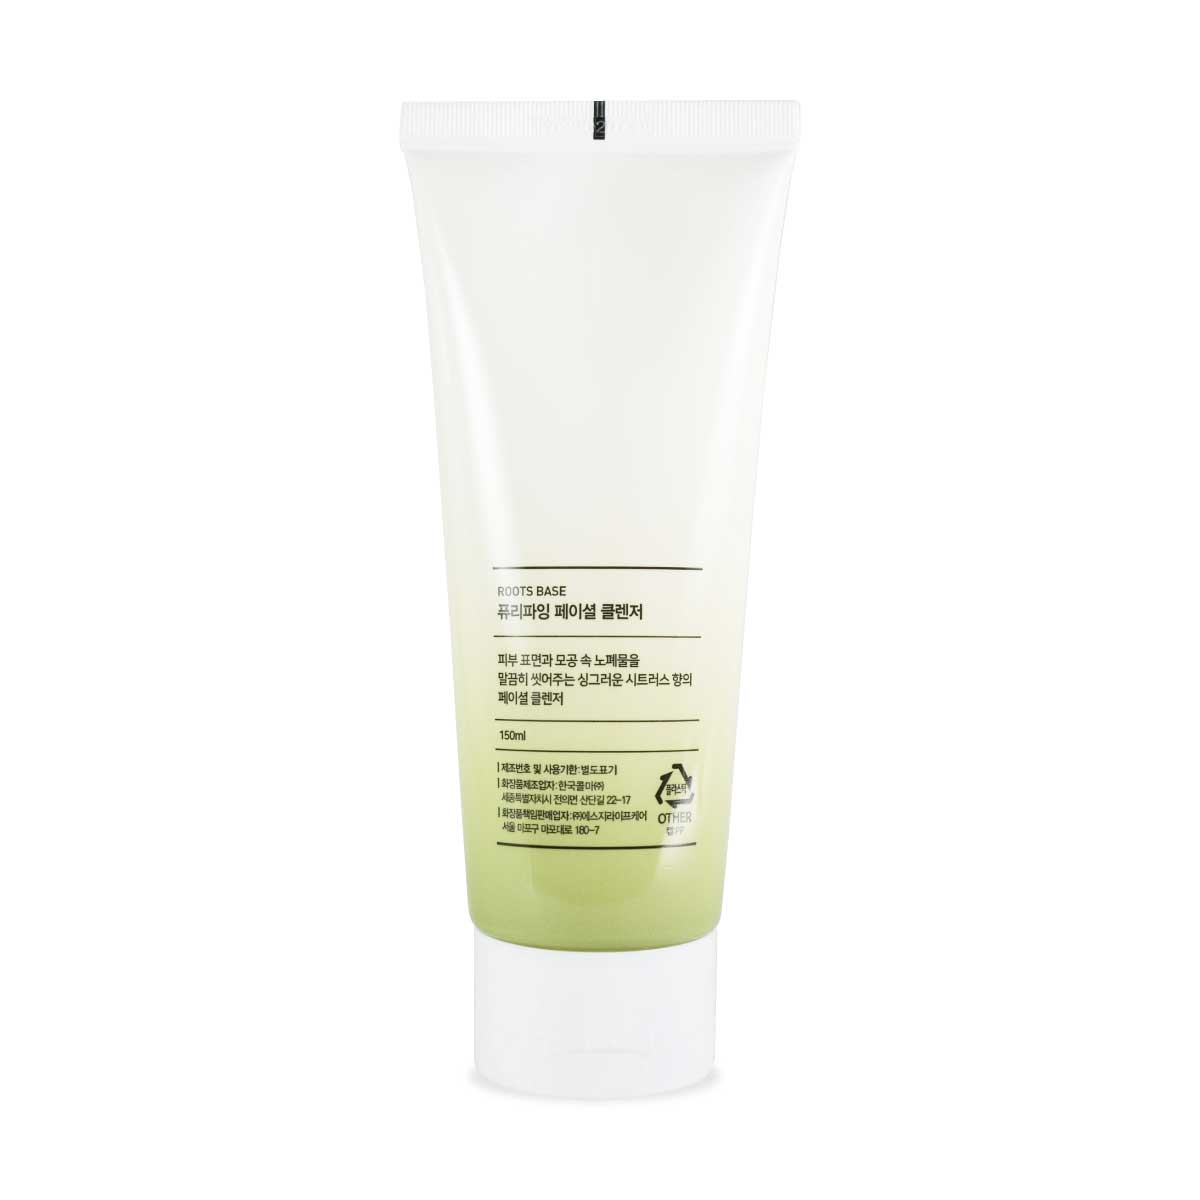 ROOTS BASE Purifying Facial Cleanser 150ml